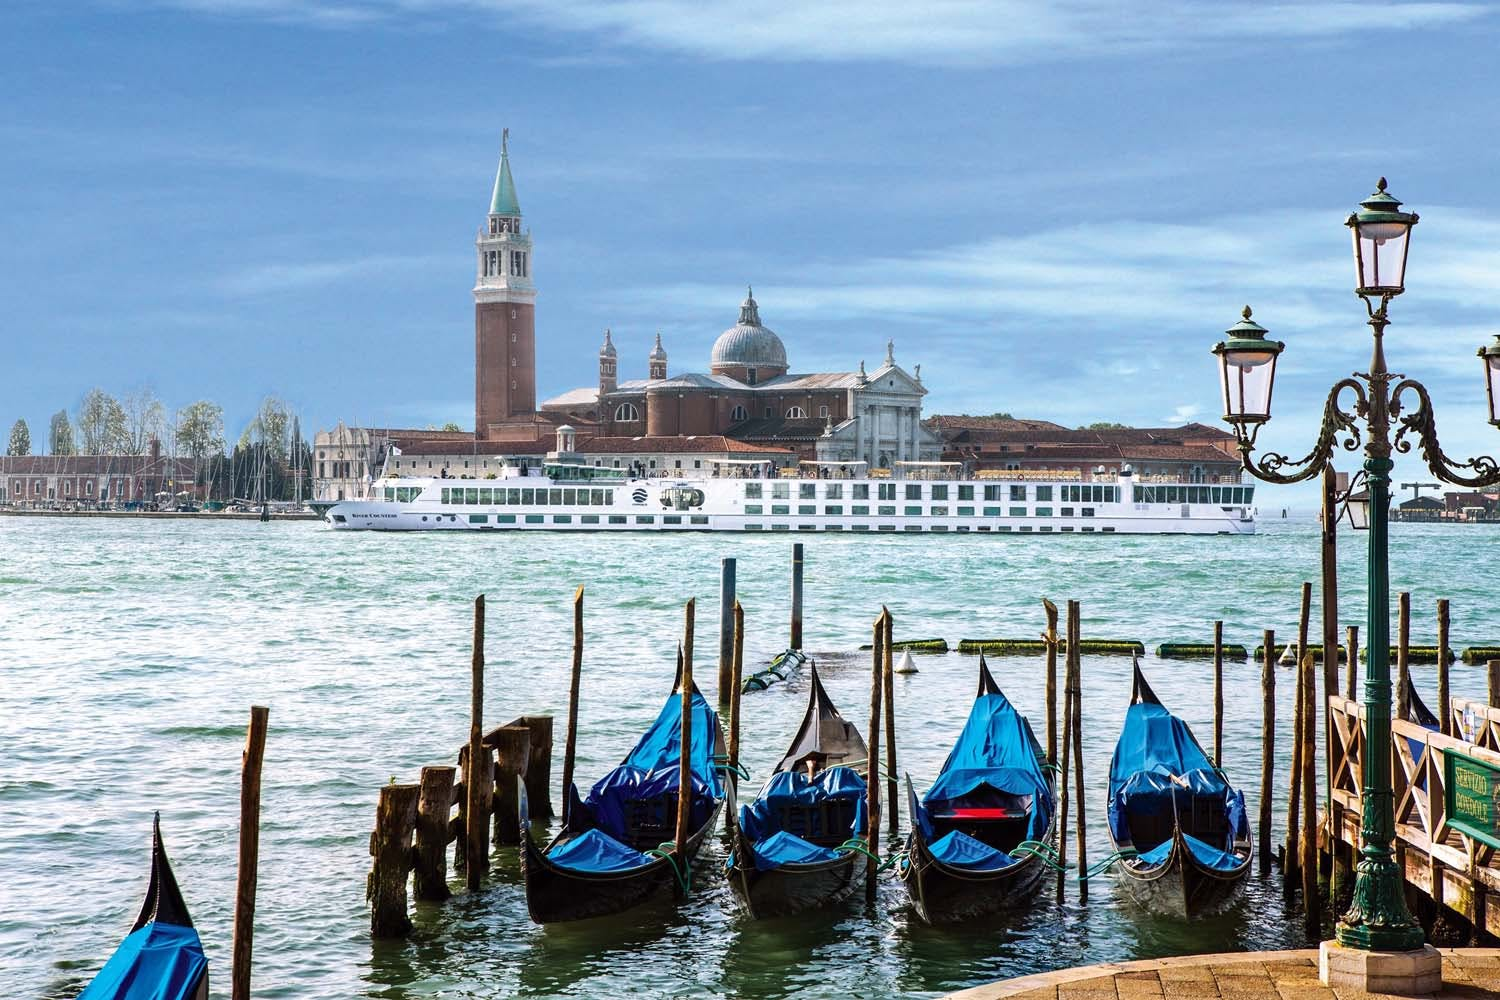 Uniworld River Countess in Venice Italy